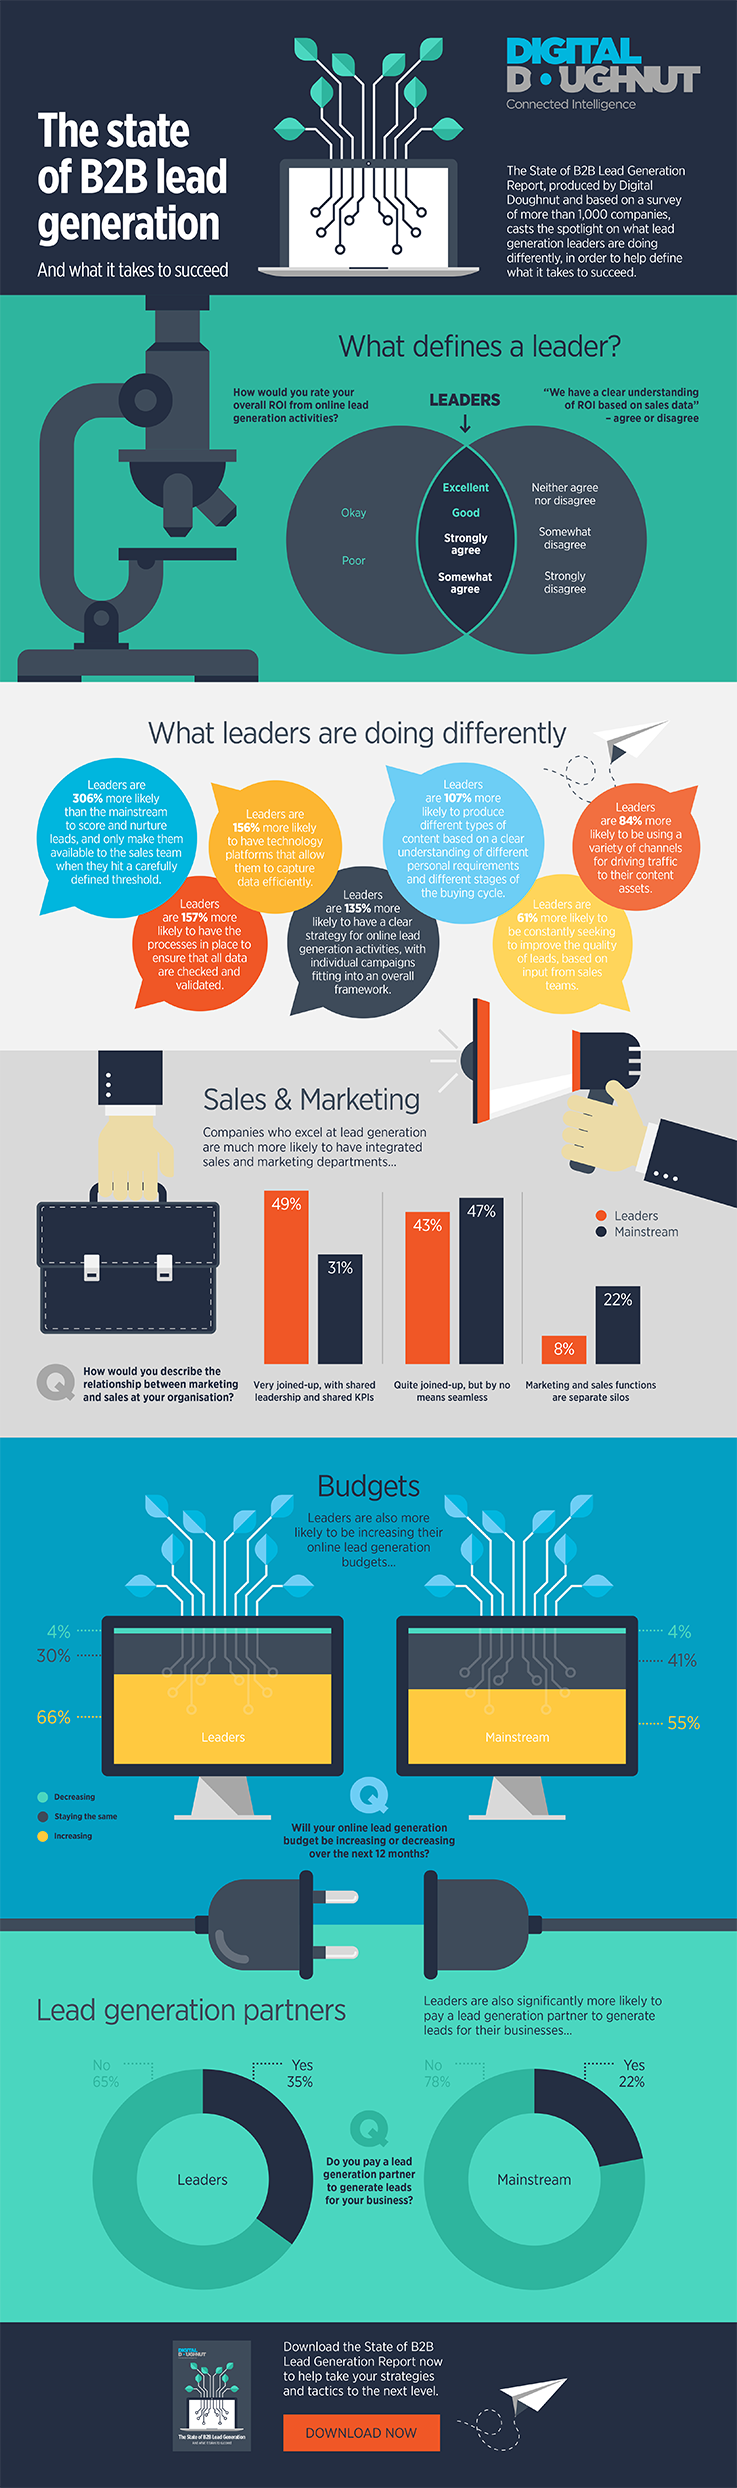 Digital-Doughnut-State-of-B2B-Lead-Generation-Infographic.png